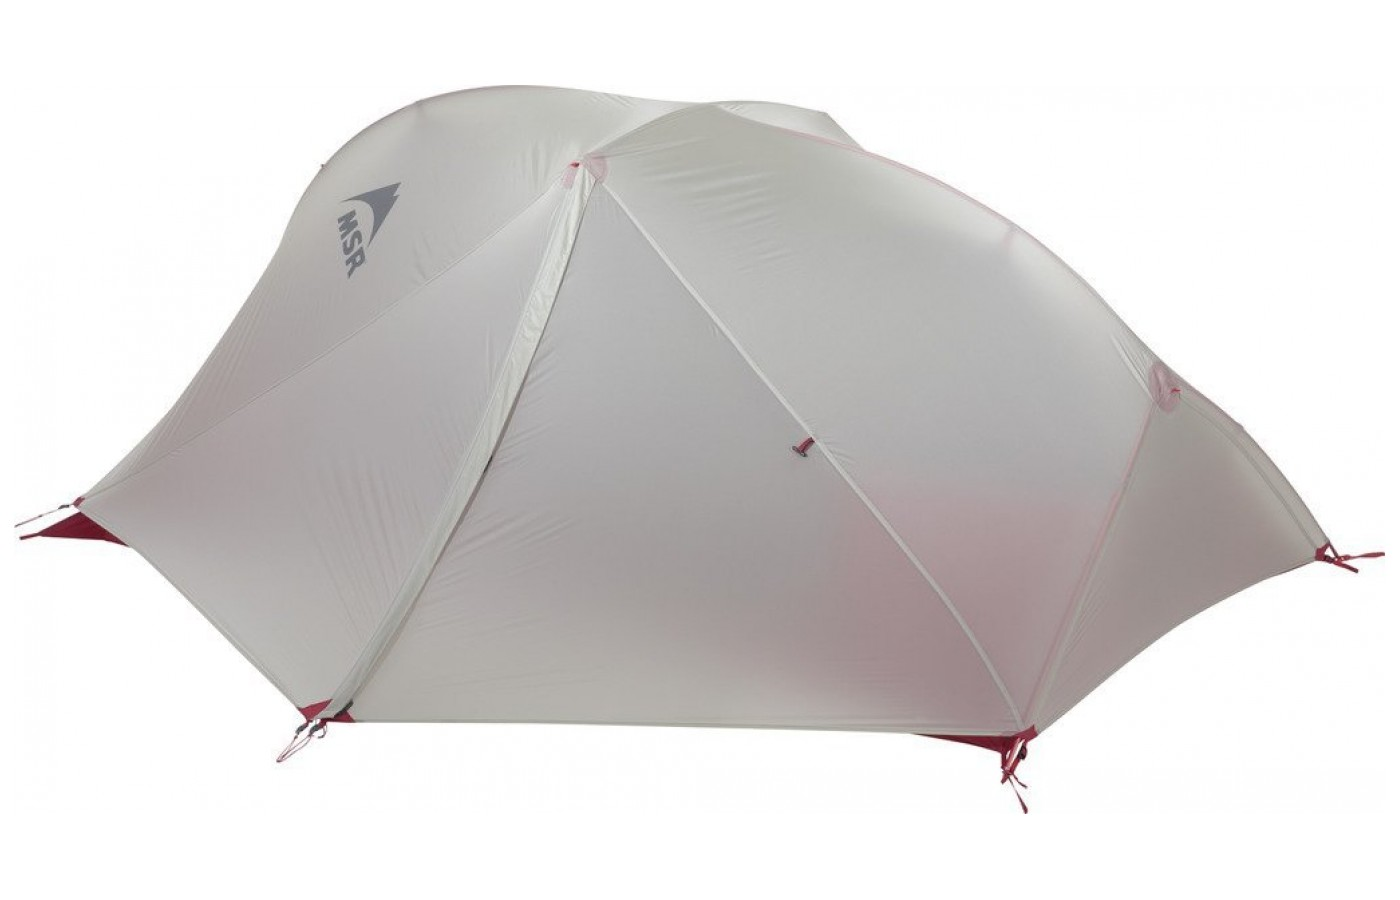 The tent is great for all weather conditions.